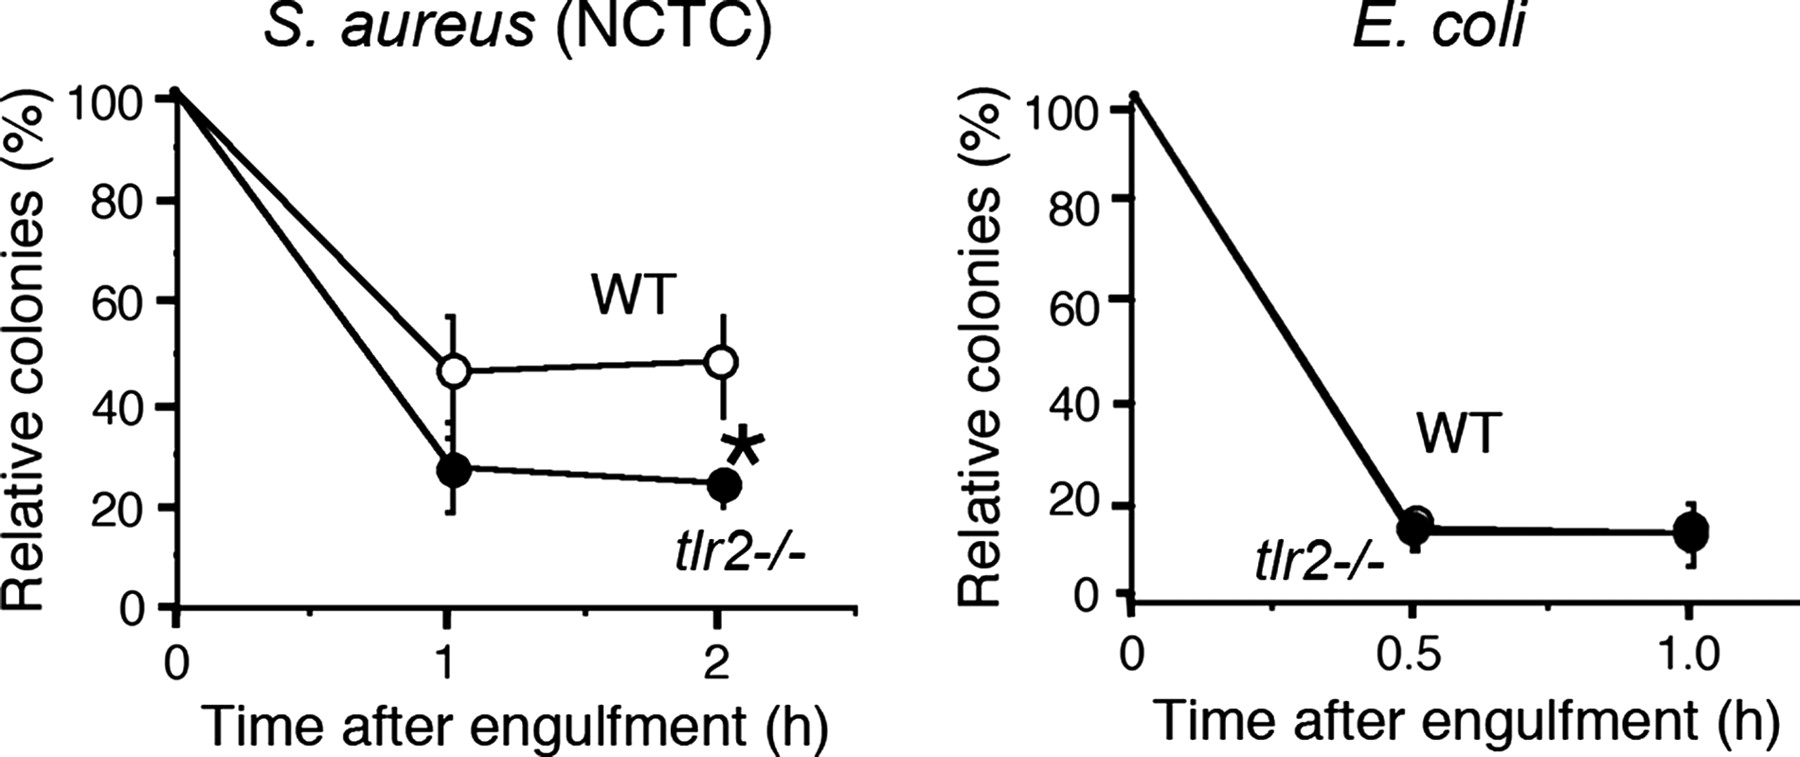 Tlr2 mediated survival of staphylococcus aureus in macrophages a download figure ccuart Choice Image